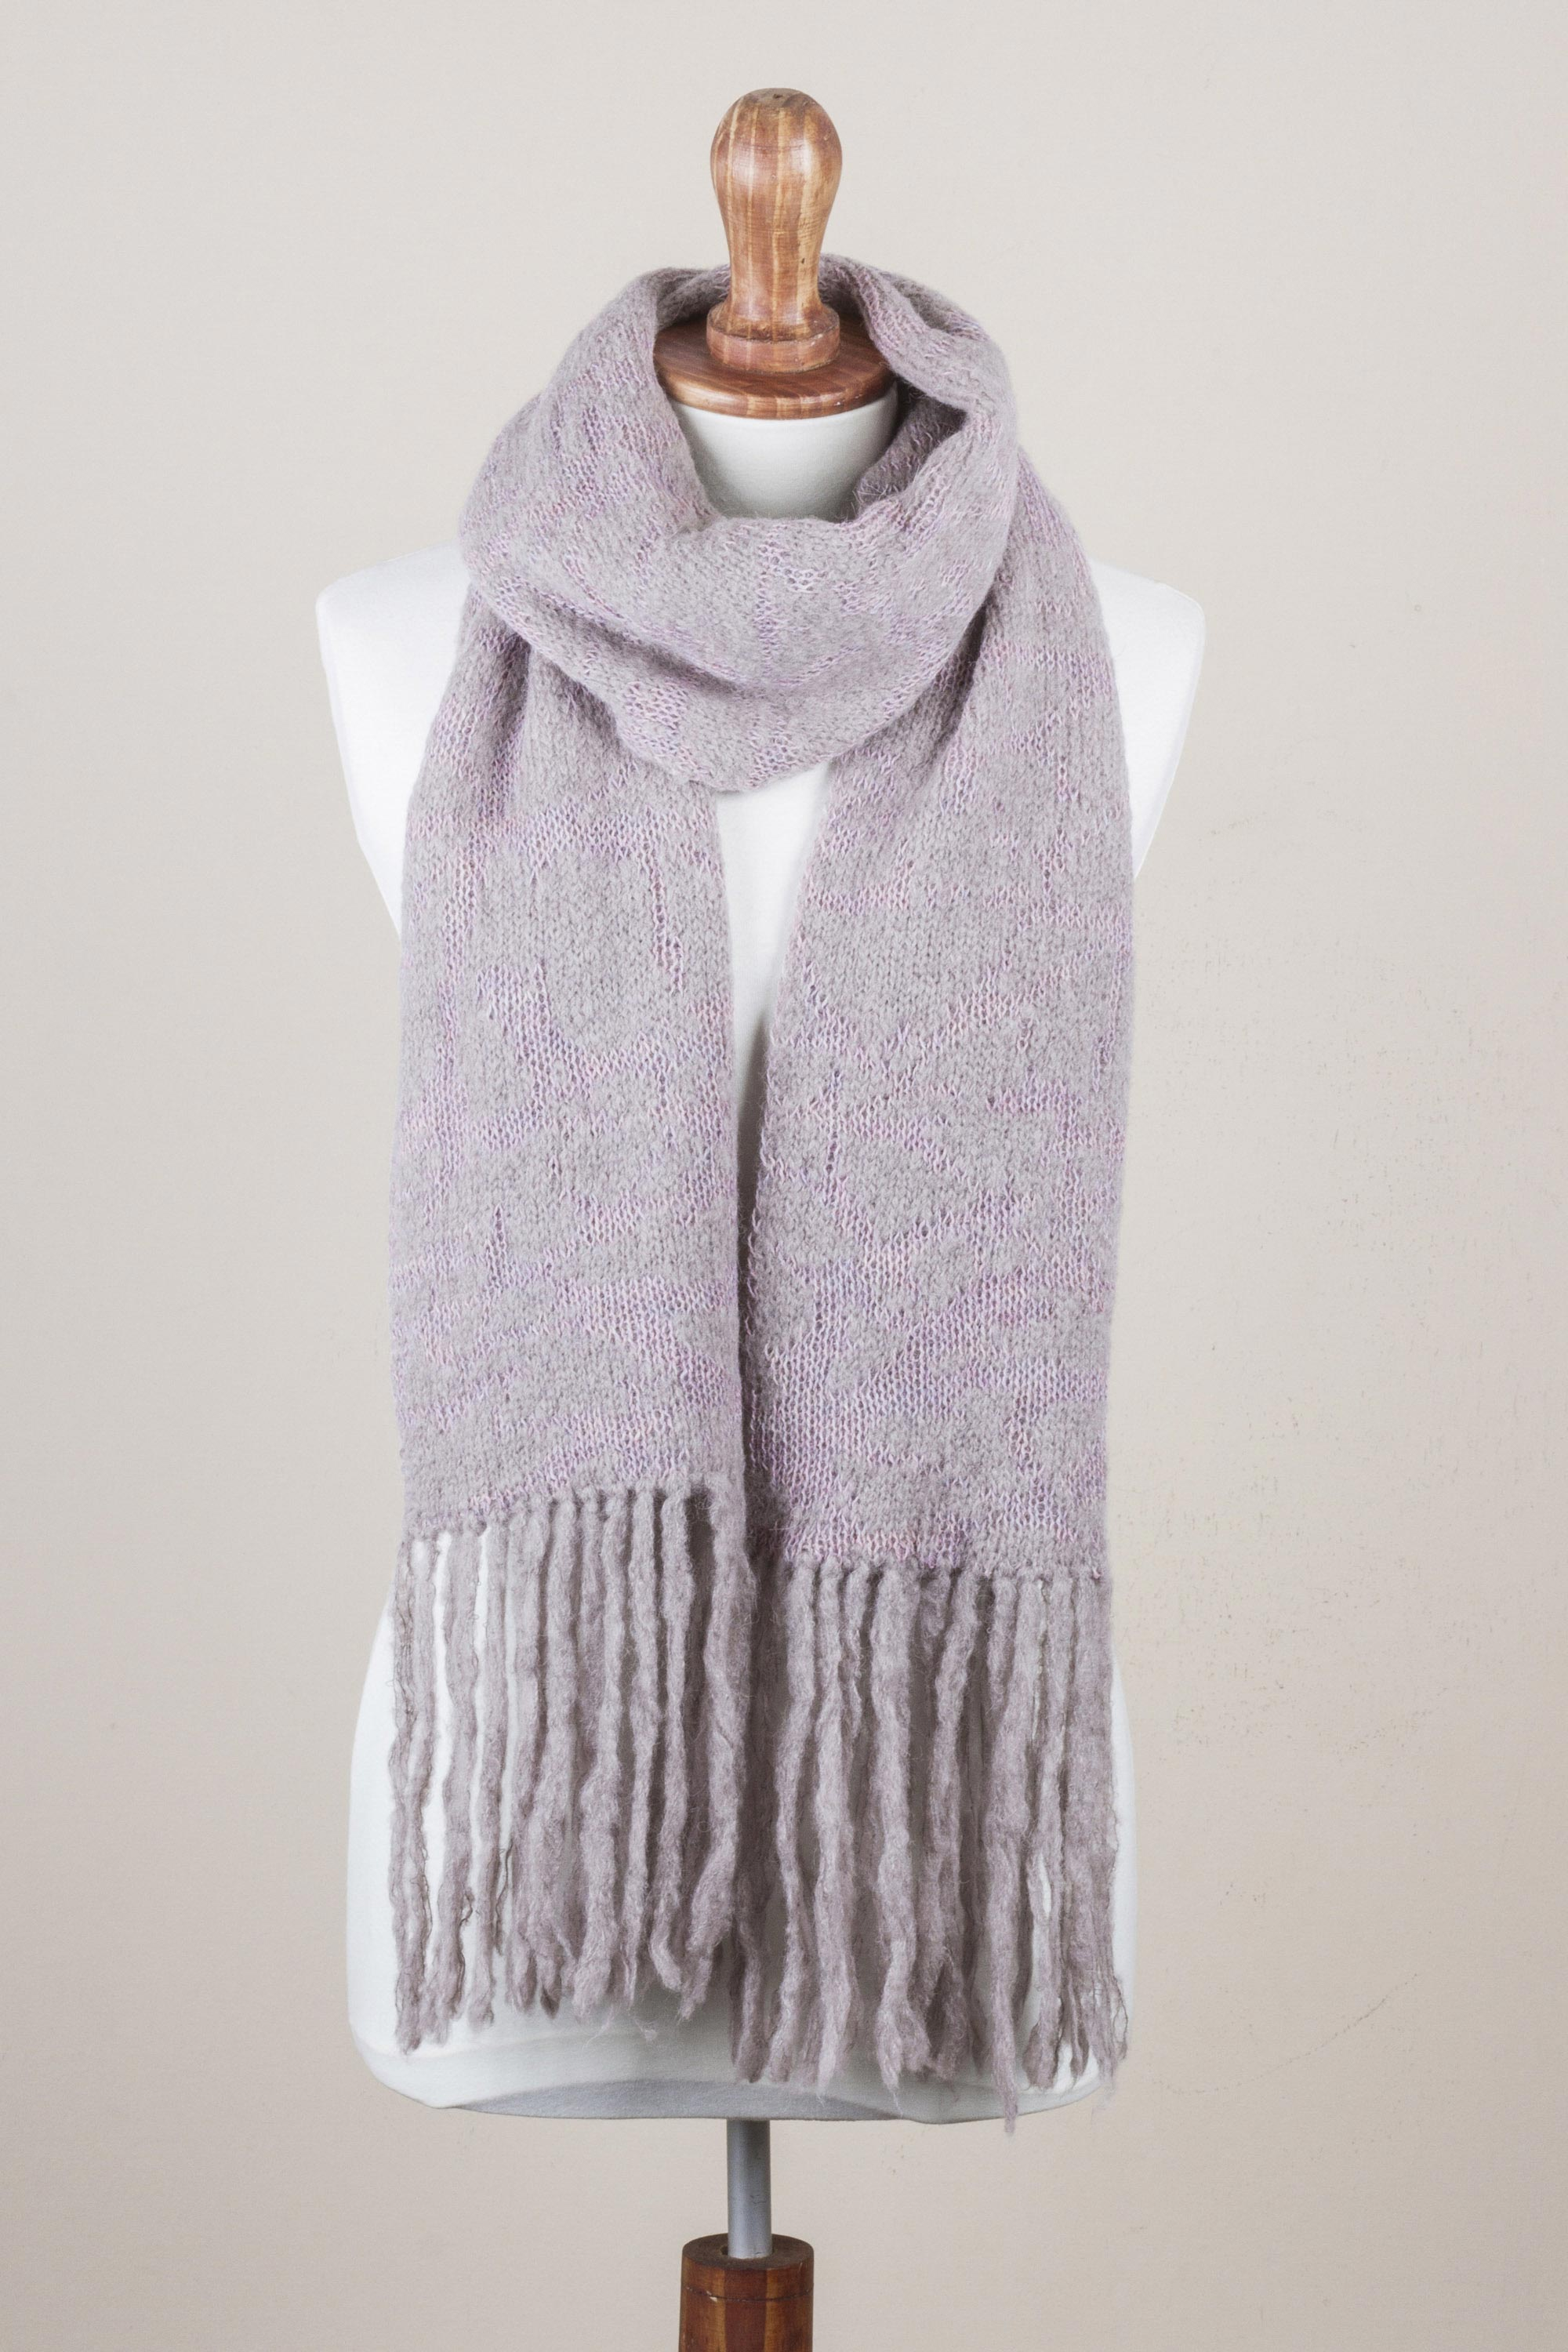 100% Alpaca Knit Scarf in Smoke and Pastel Pink from Peru Look Cool and Stay Warm Stylish & Practical Winter Accessories